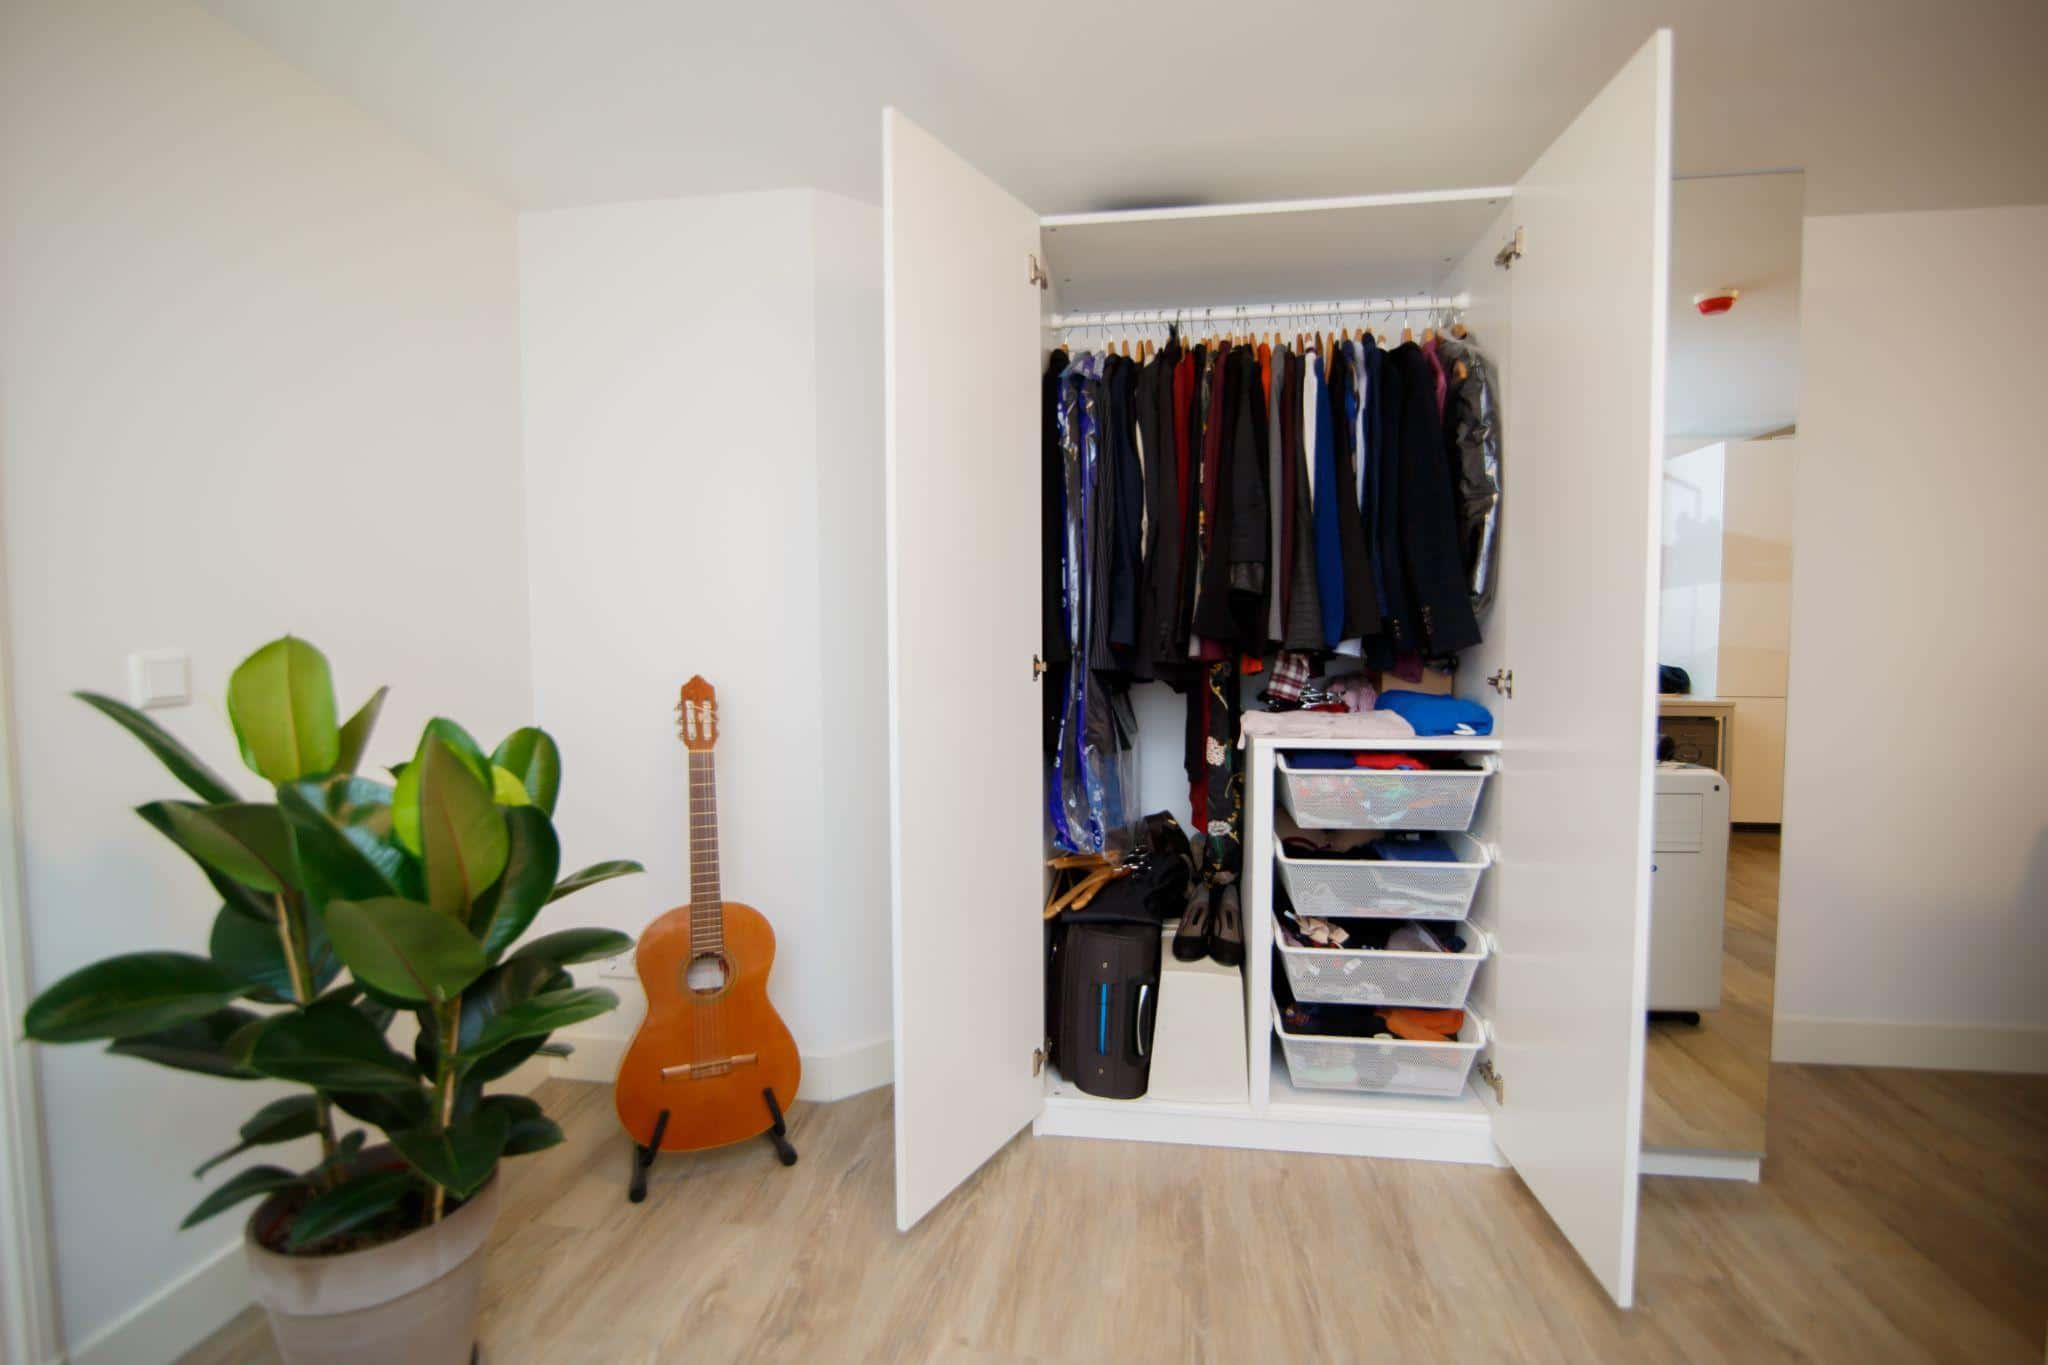 How to Organize Built-in Wardrobes in Small Bedrooms